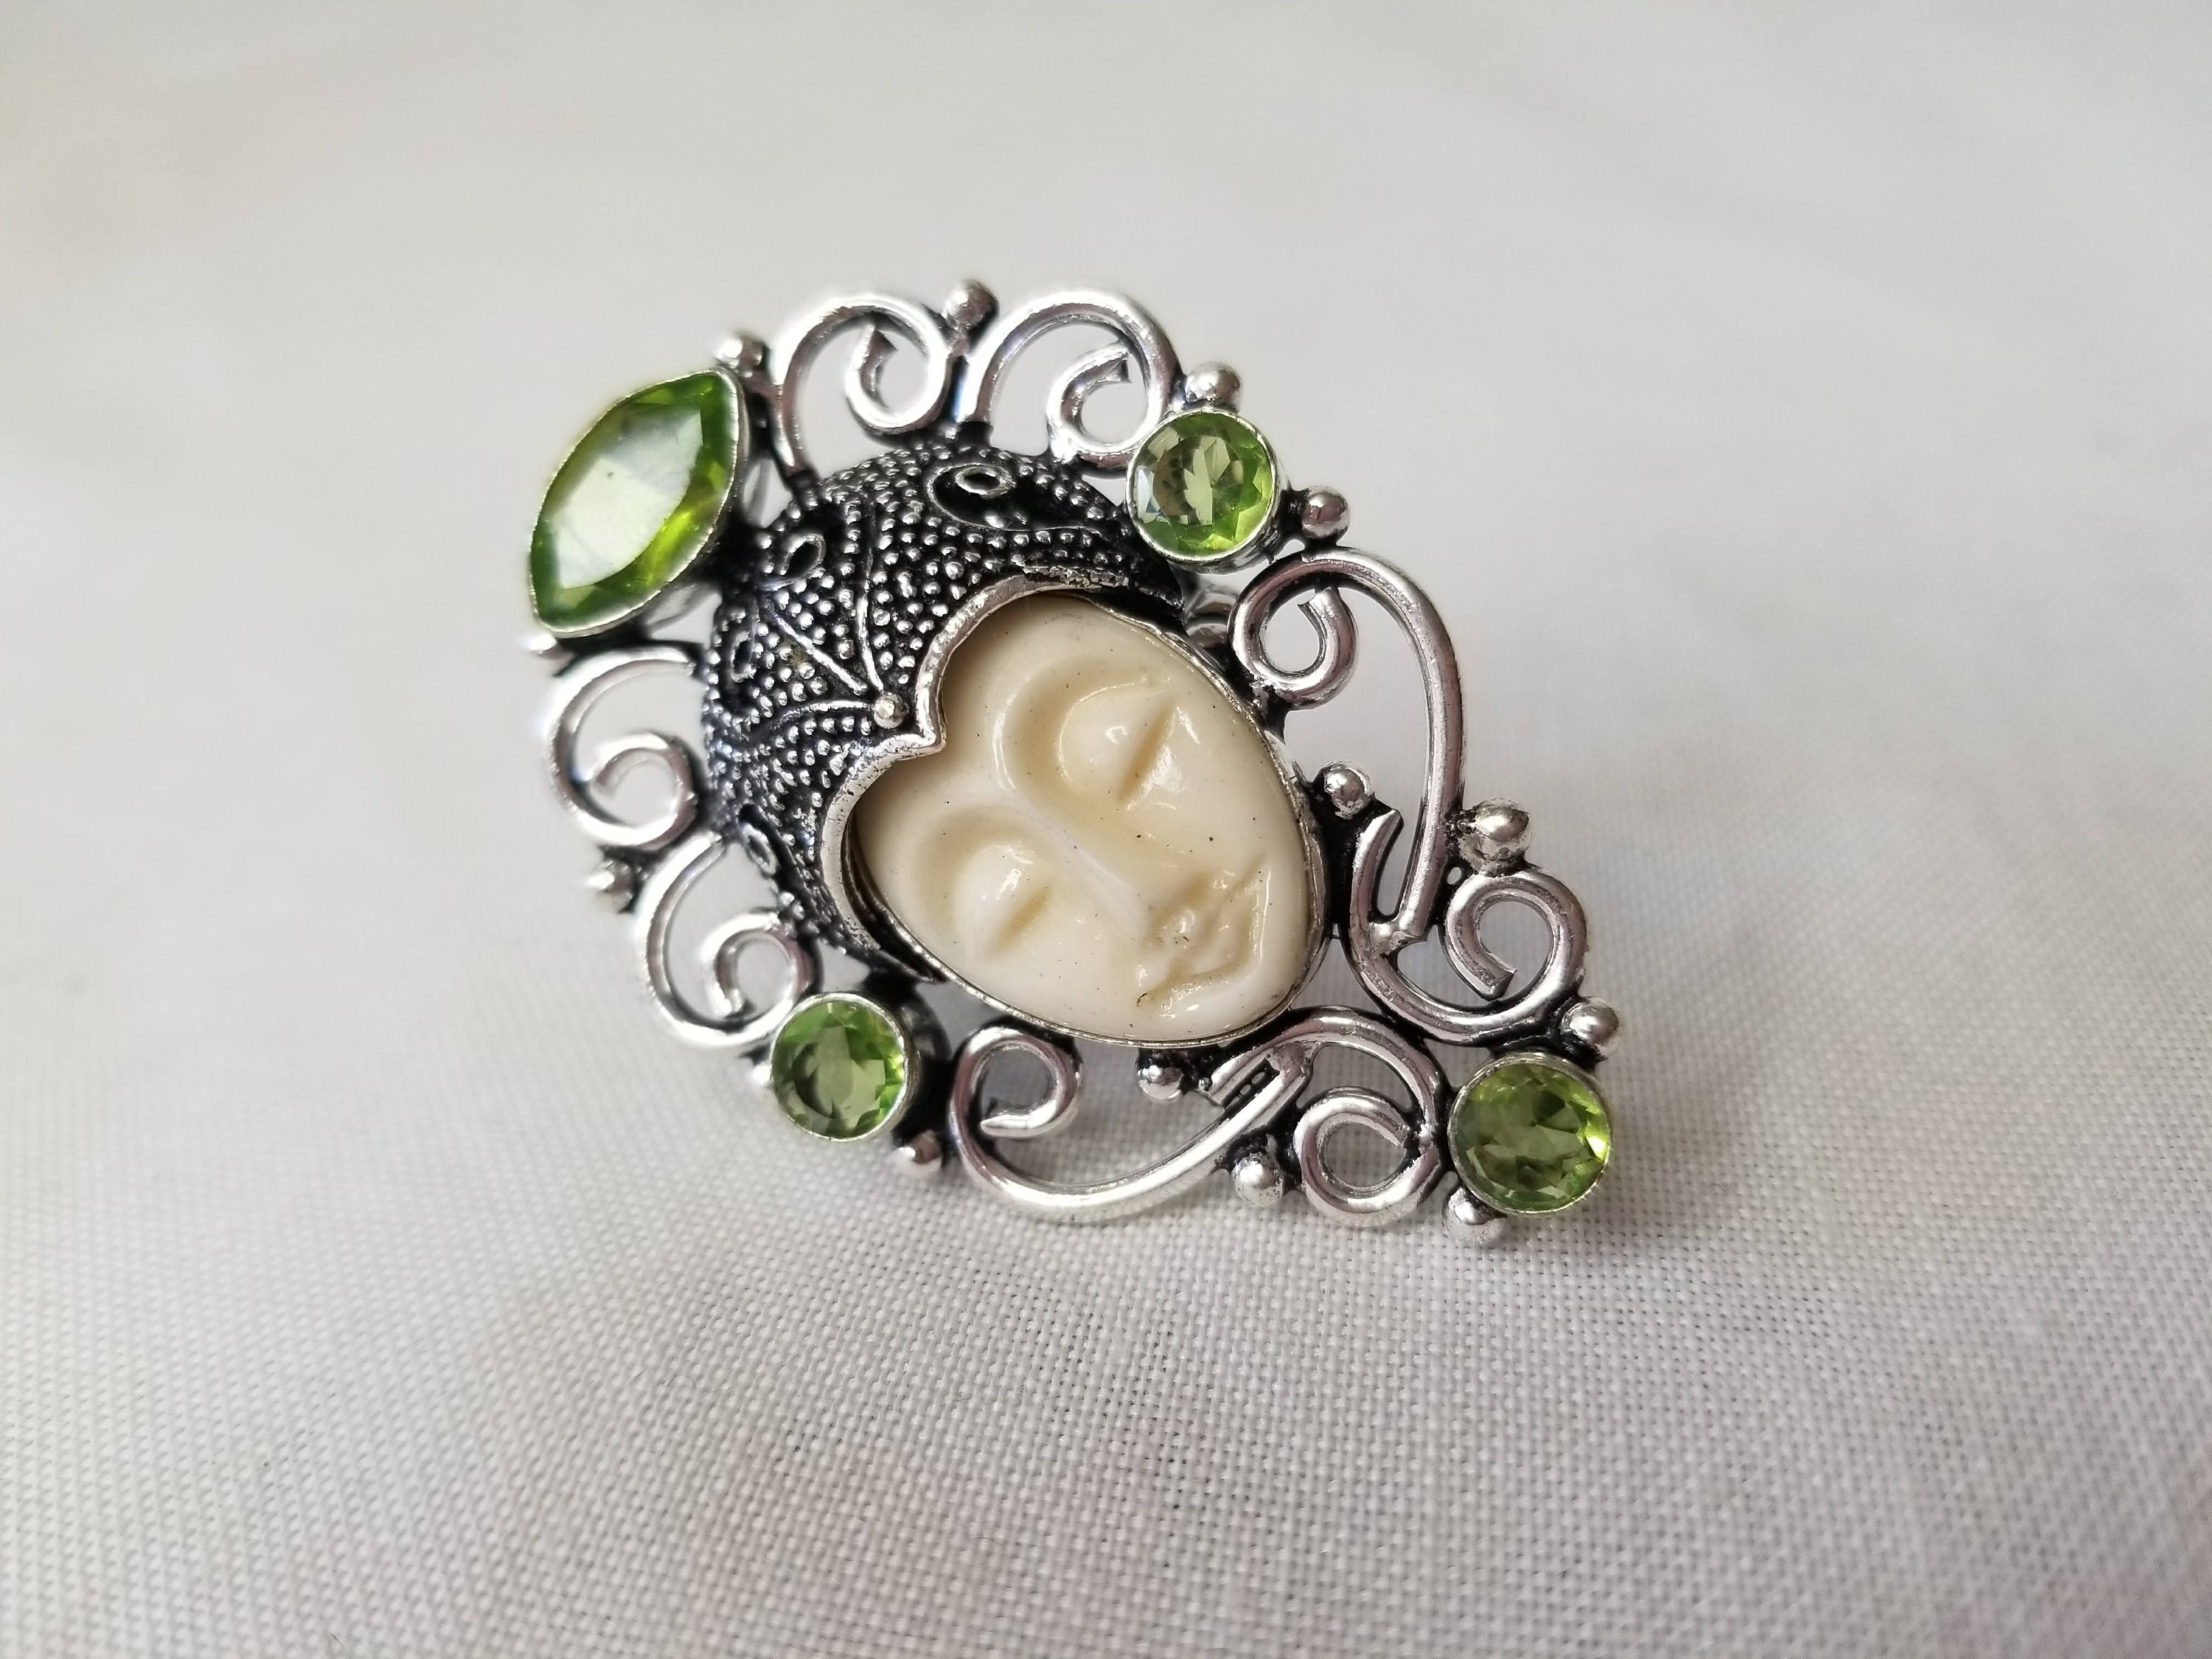 reserves fullxfull size goddess no paranormal photo enchanted rings il moon listing gallery